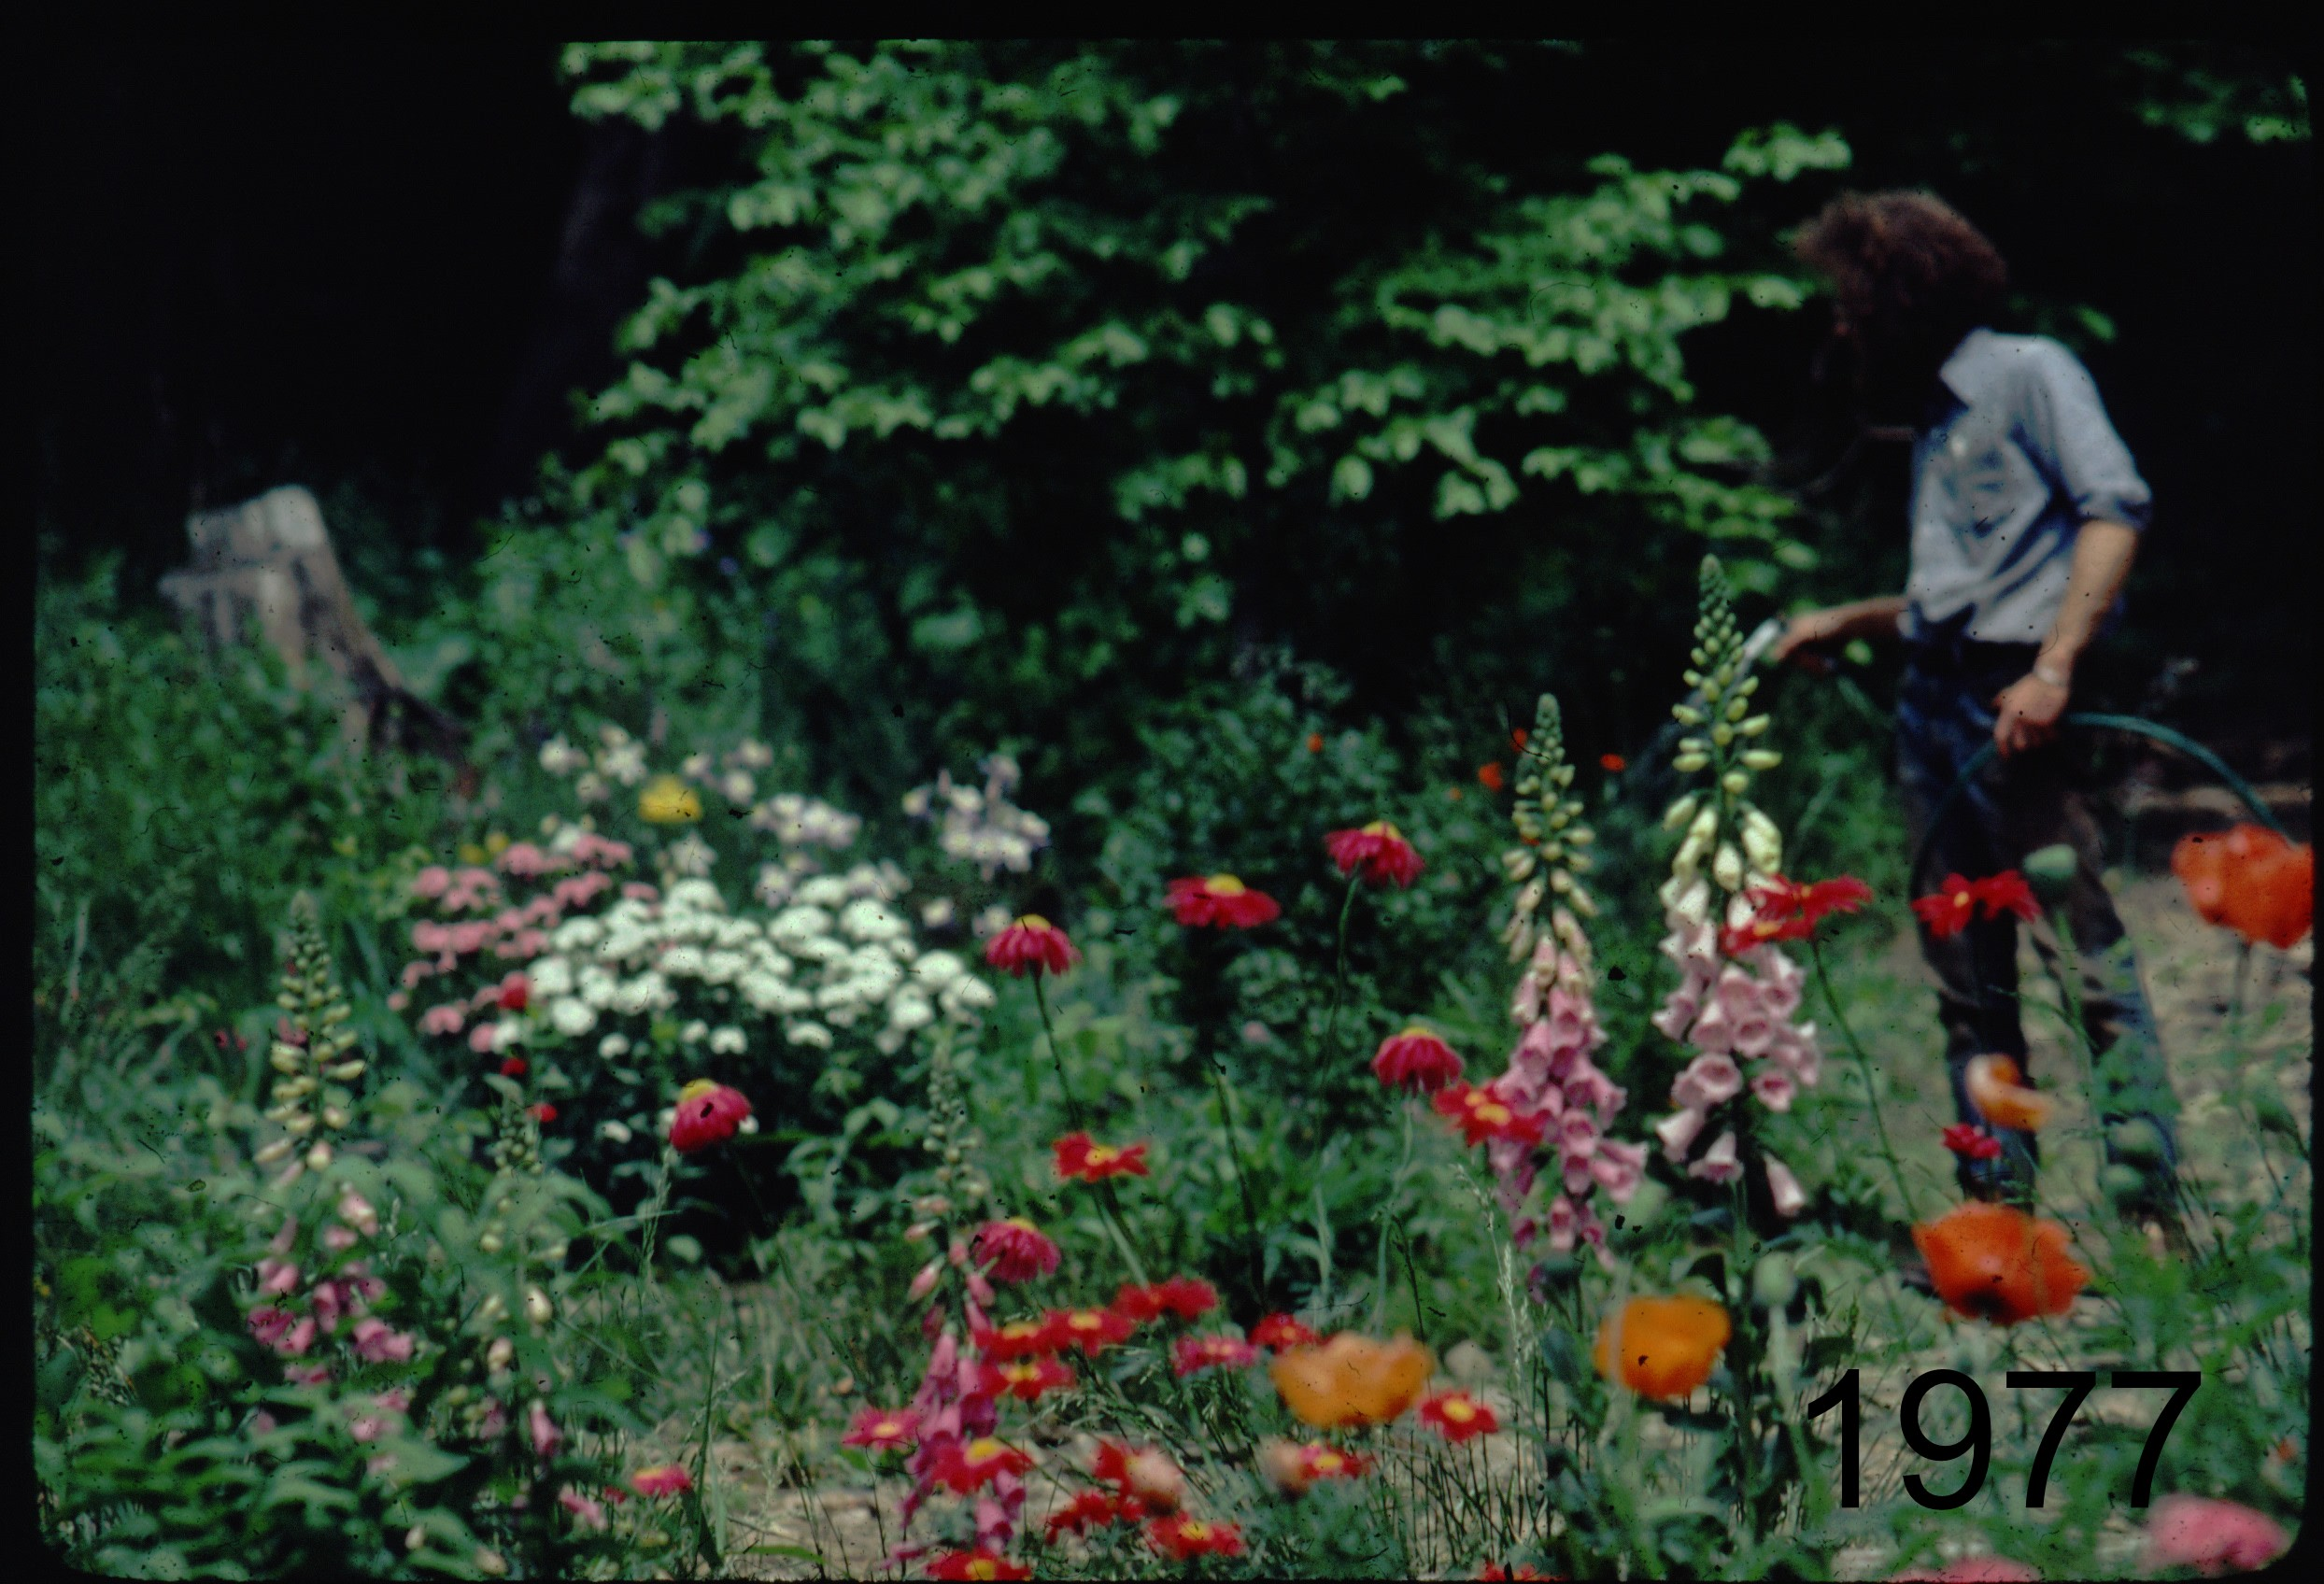 1977 joe watering flowers.jpg